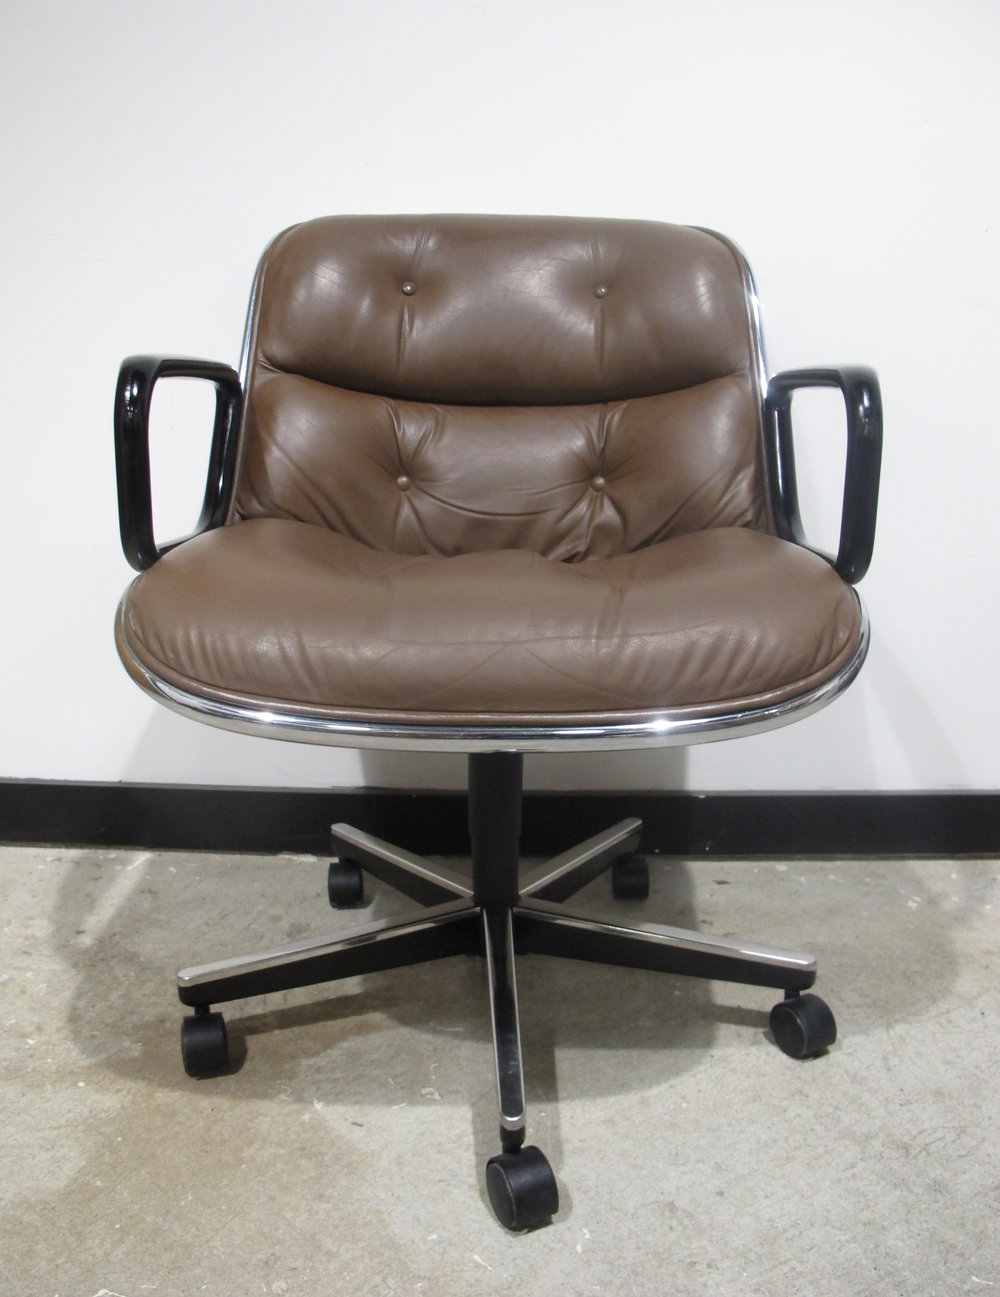 MID CENTURY BROWN EXECUTIVE ROLLING POLLOCK ARMCHAIR BY KNOLL